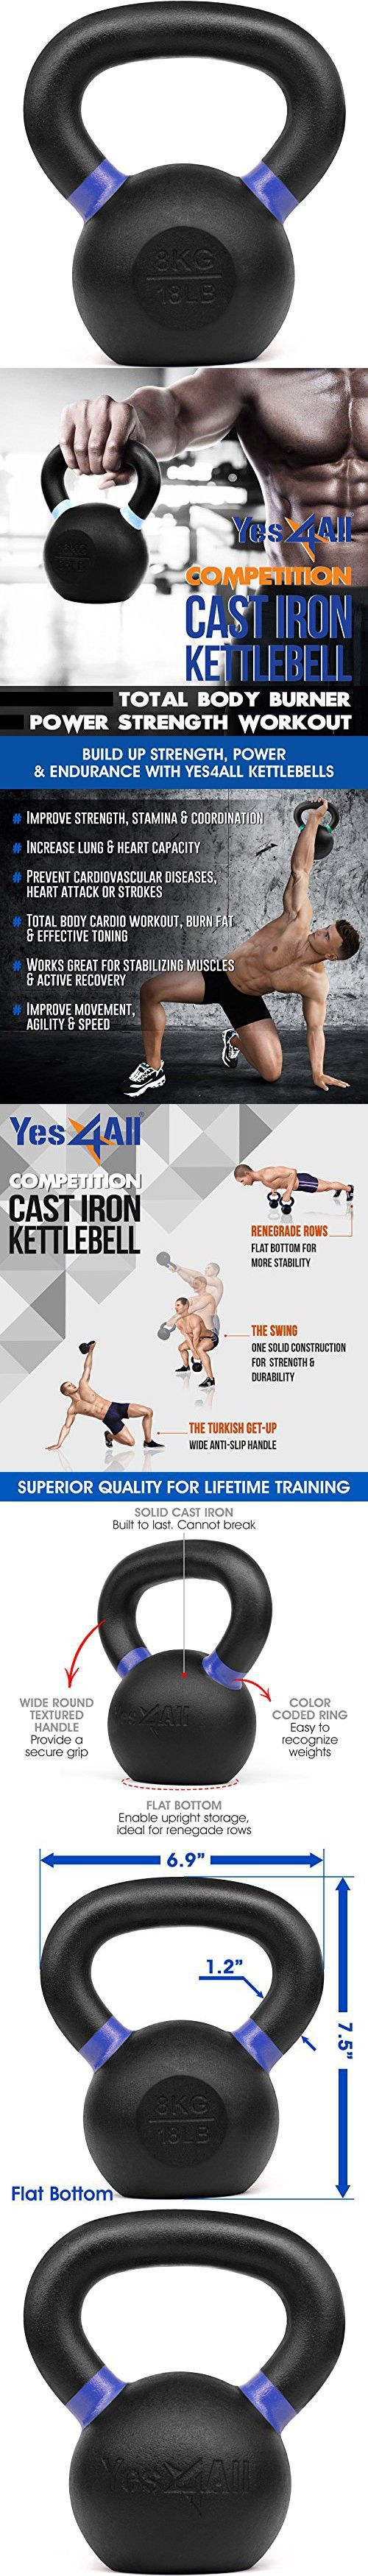 Yes4All Solid Cast Iron Competition Kettlebell Weight Set - Great for Full Body Workout  8 KG / 18 LB Kettlebell Competition Weight